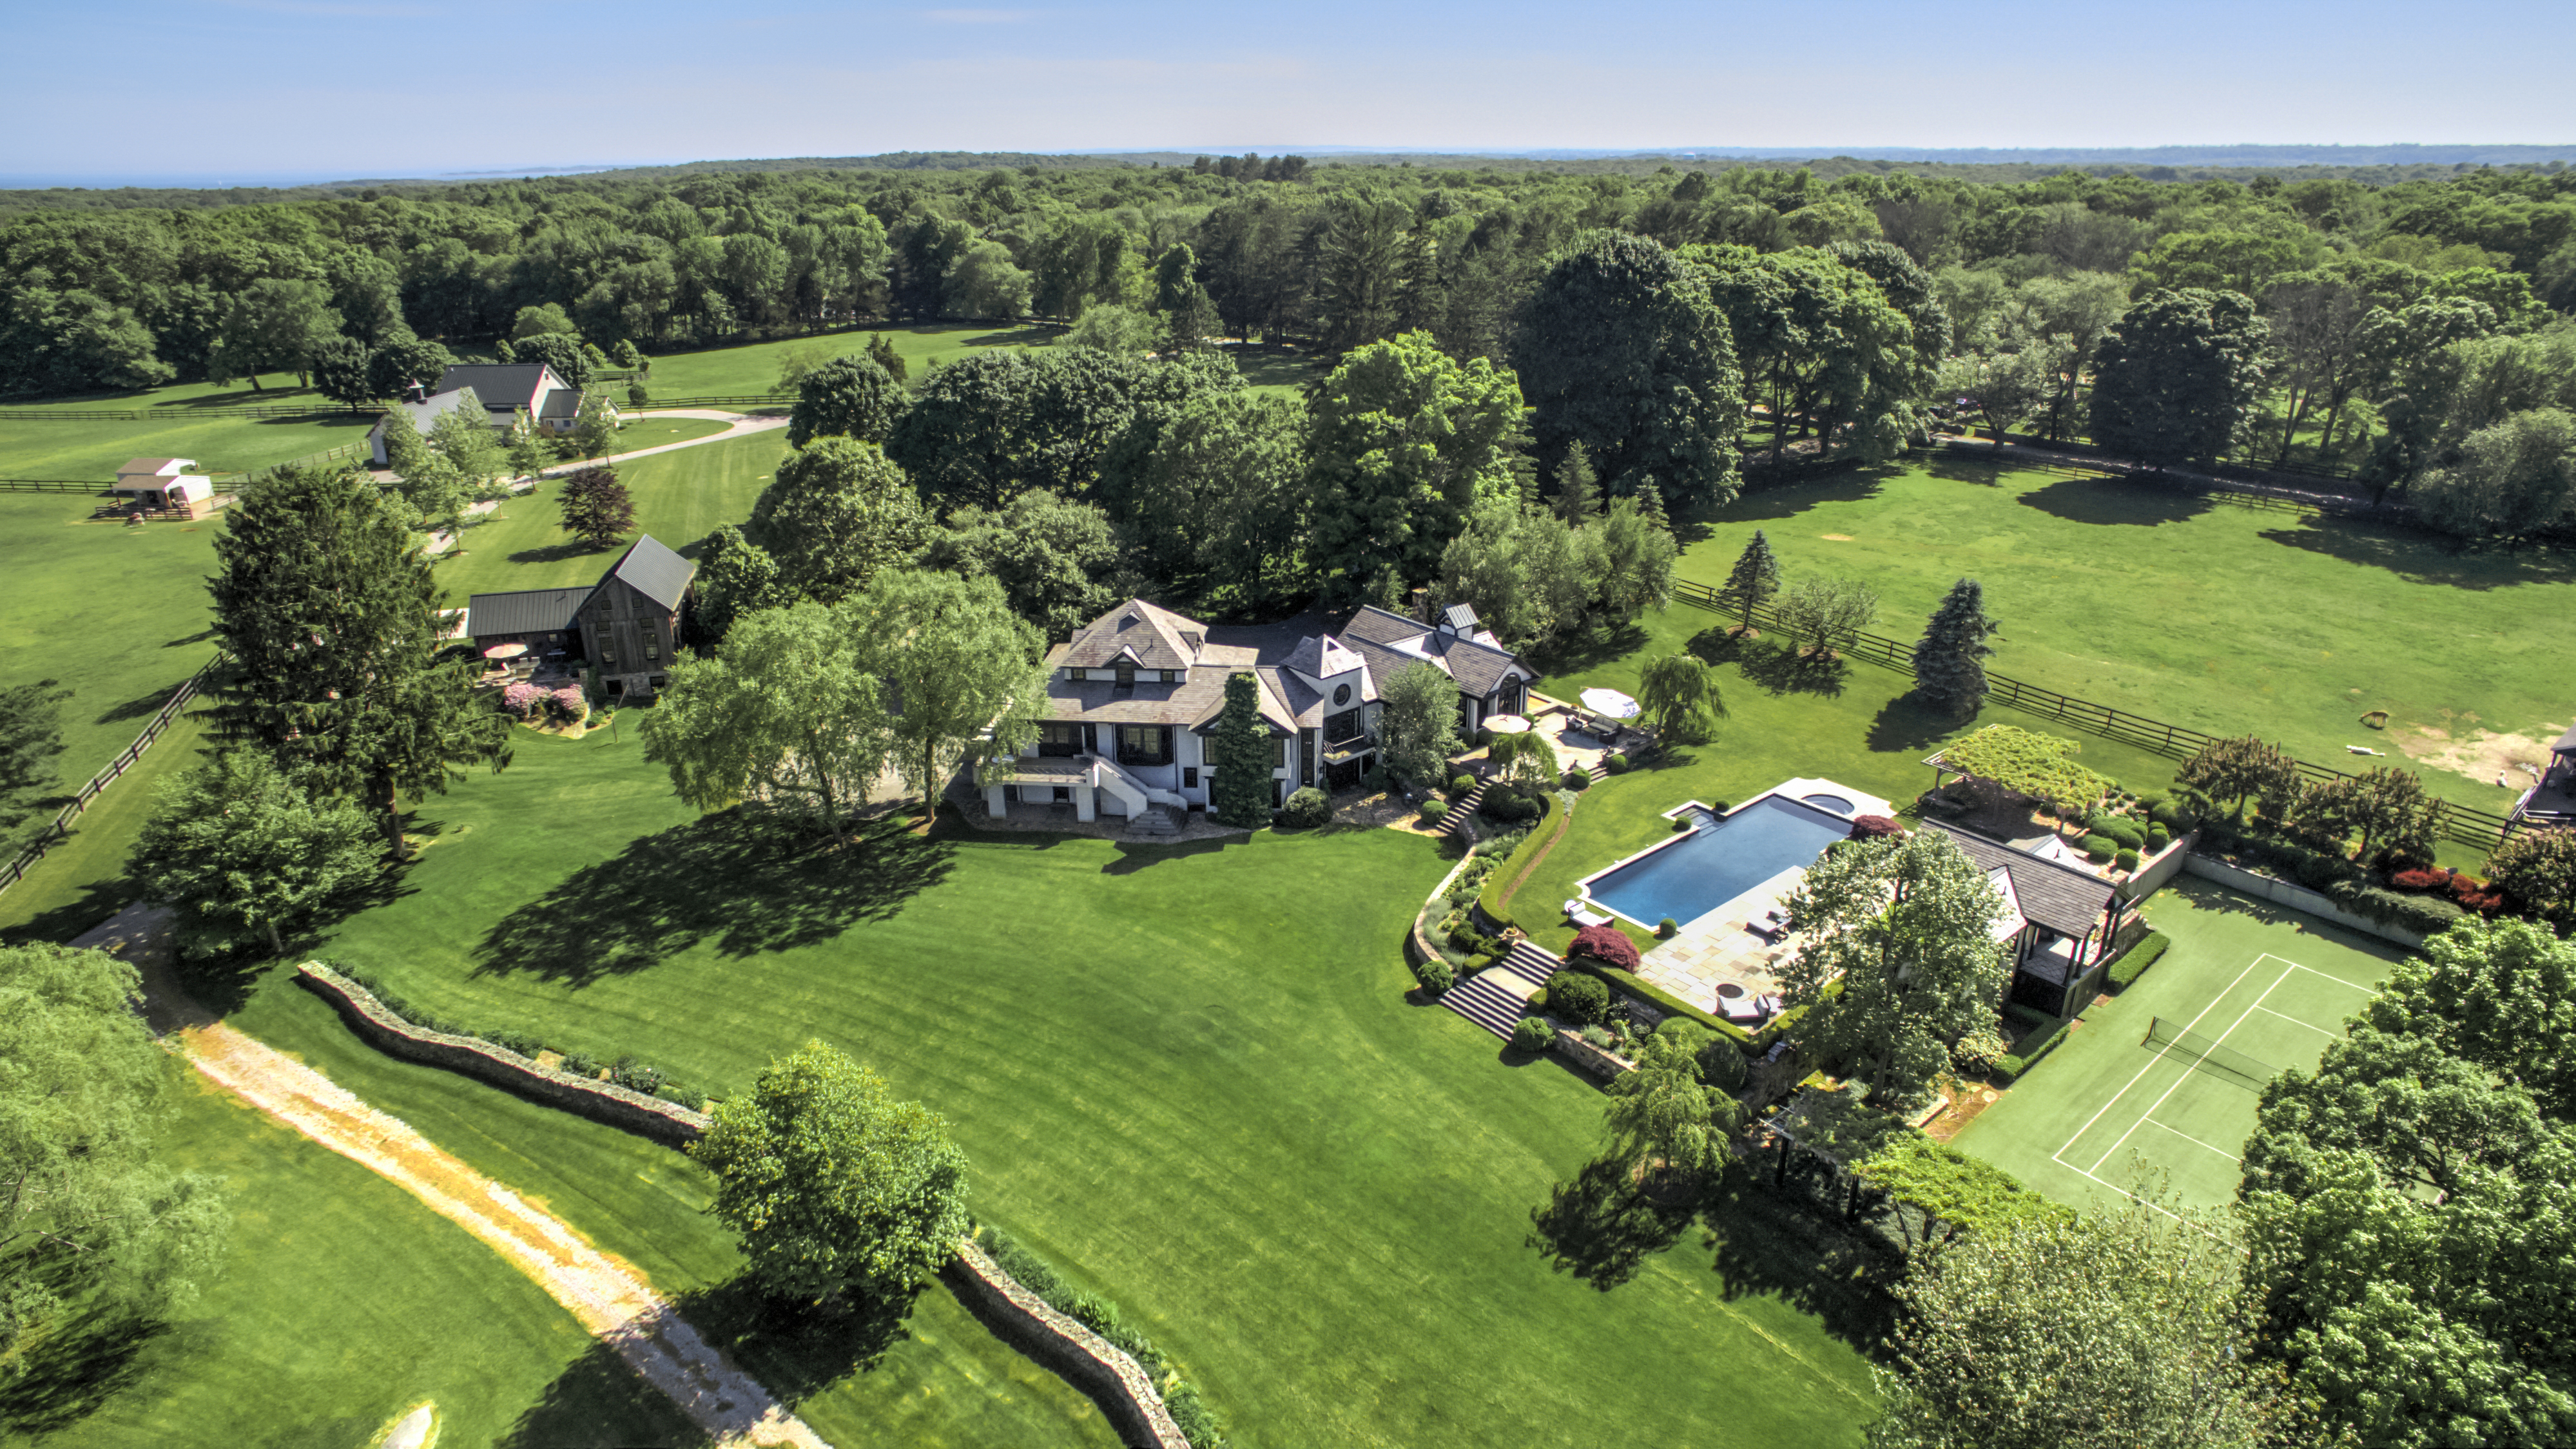 5 New Properties For Sale In The Stonington Mystic Area